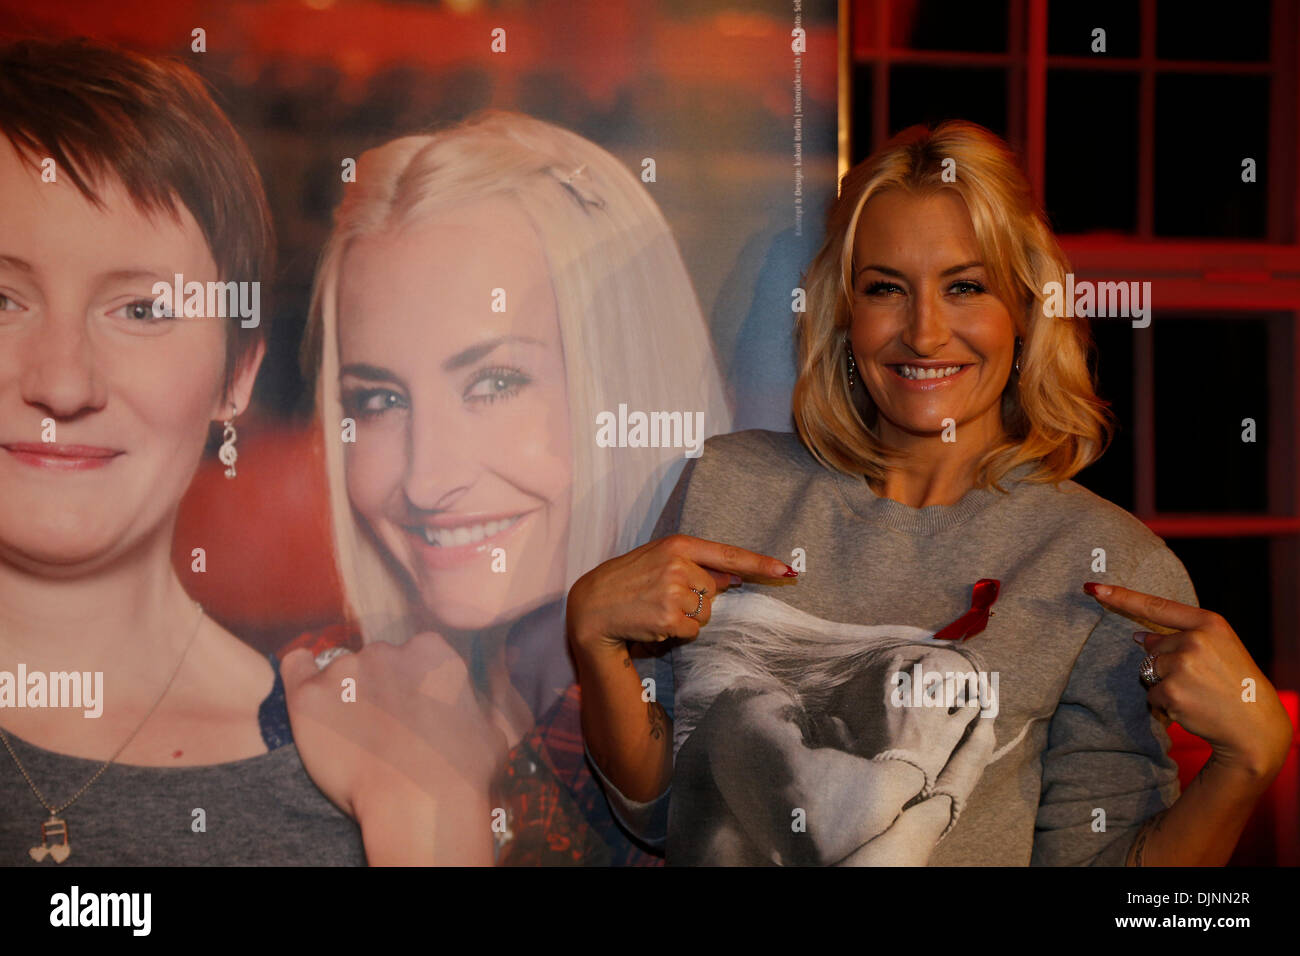 Berlin, Germany. November 29th, 2013. Press conference with German star singer Sarah Connor on 'Live together positively' on the occasion of the World AIDS Day at the admiral palace in Berlin. Credit:  Reynaldo Chaib Paganelli/Alamy Live News - Stock Image